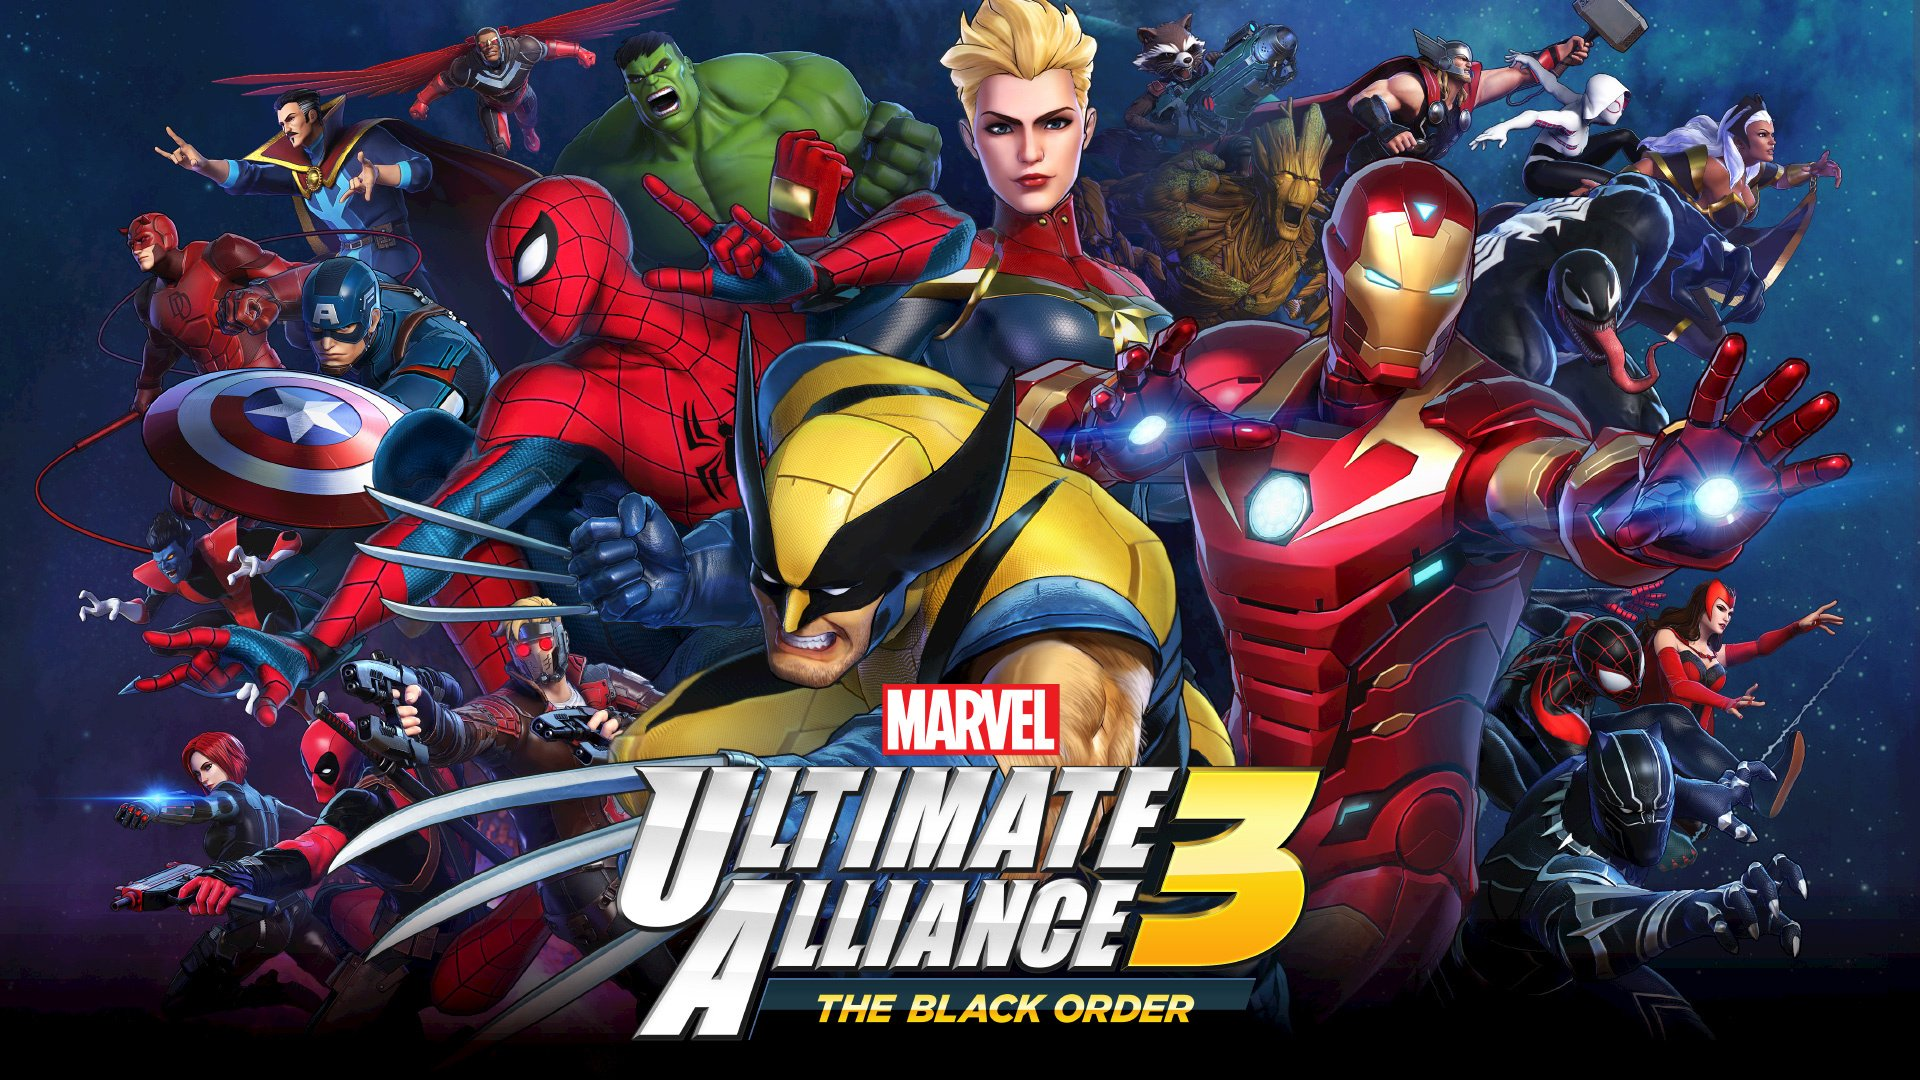 Gallery: Marvel Ultimate Alliance 3 Full Roster Of Playable Characters